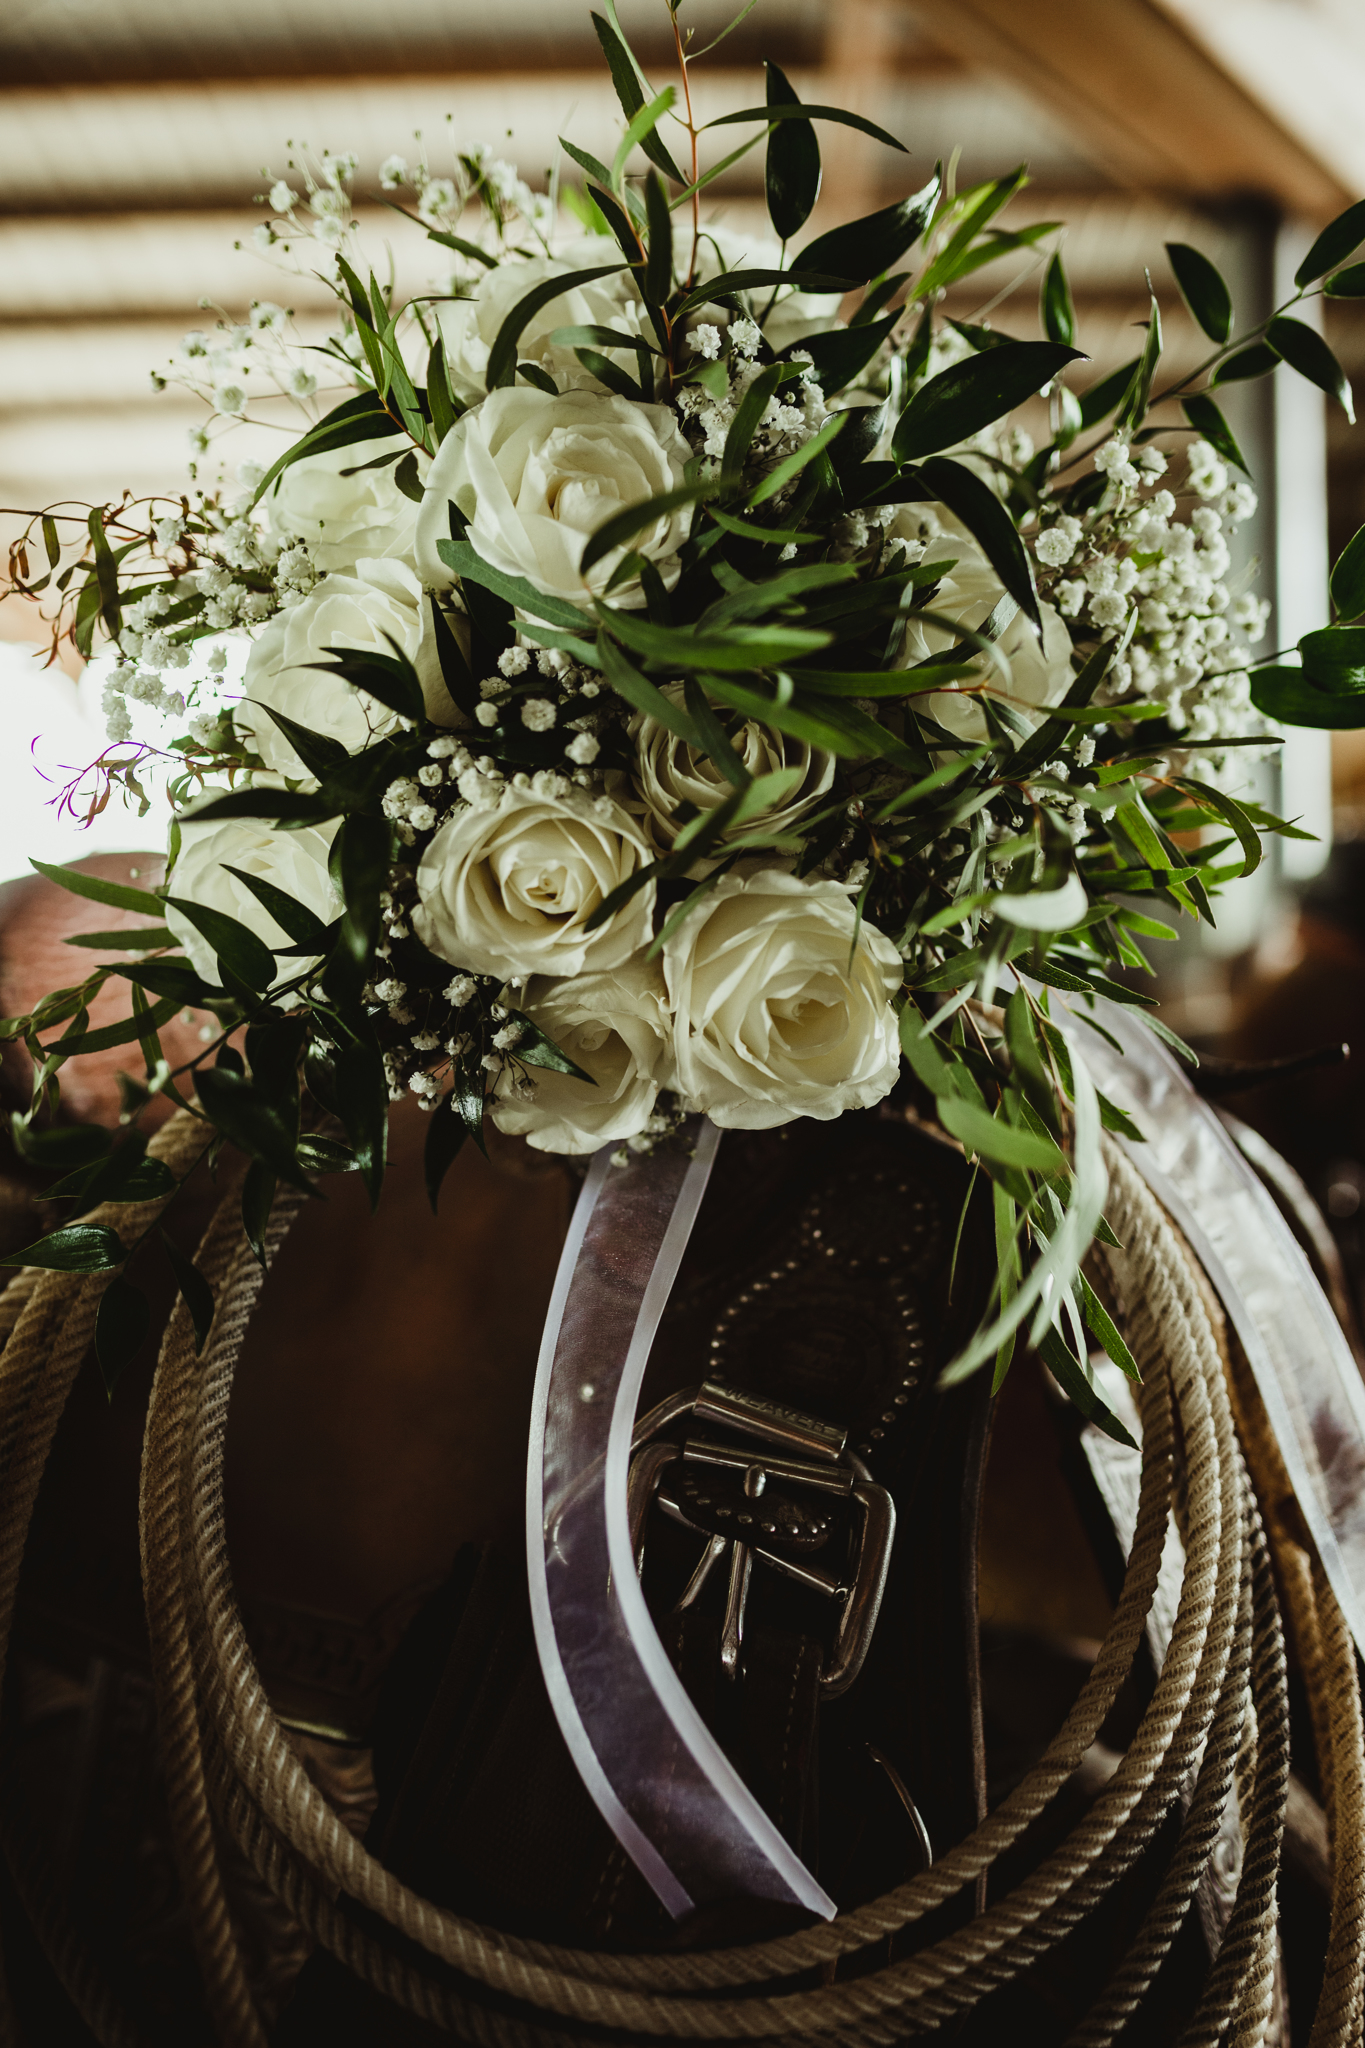 White and Greenery Wedding Bouquet: Billie-Shaye Style Wedding Photography featured on Nashville Bride Guide